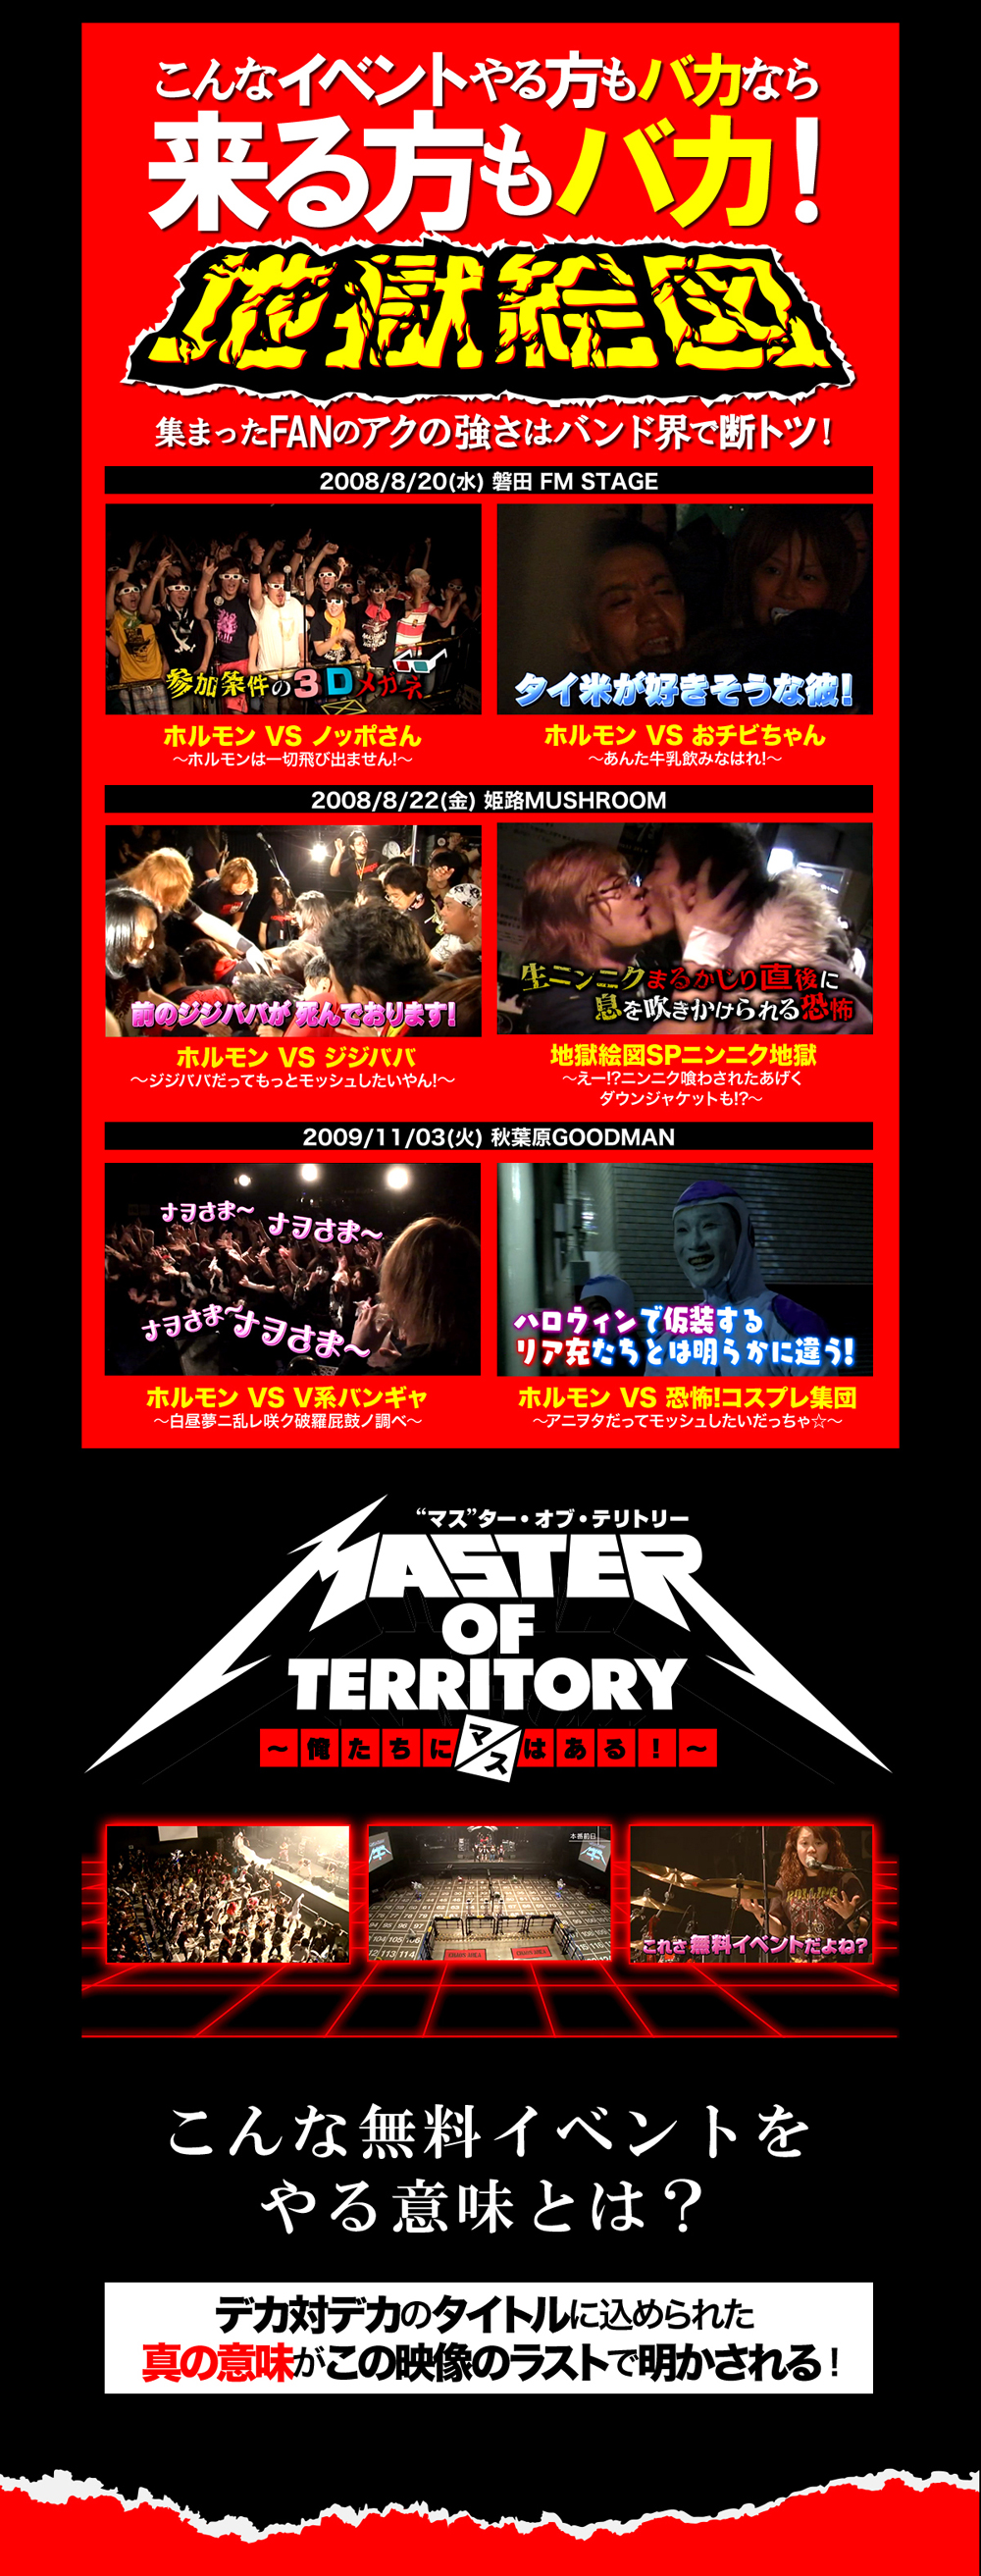 Maximum the hormone new dvd blu ray cd release news for Koi no mega lover